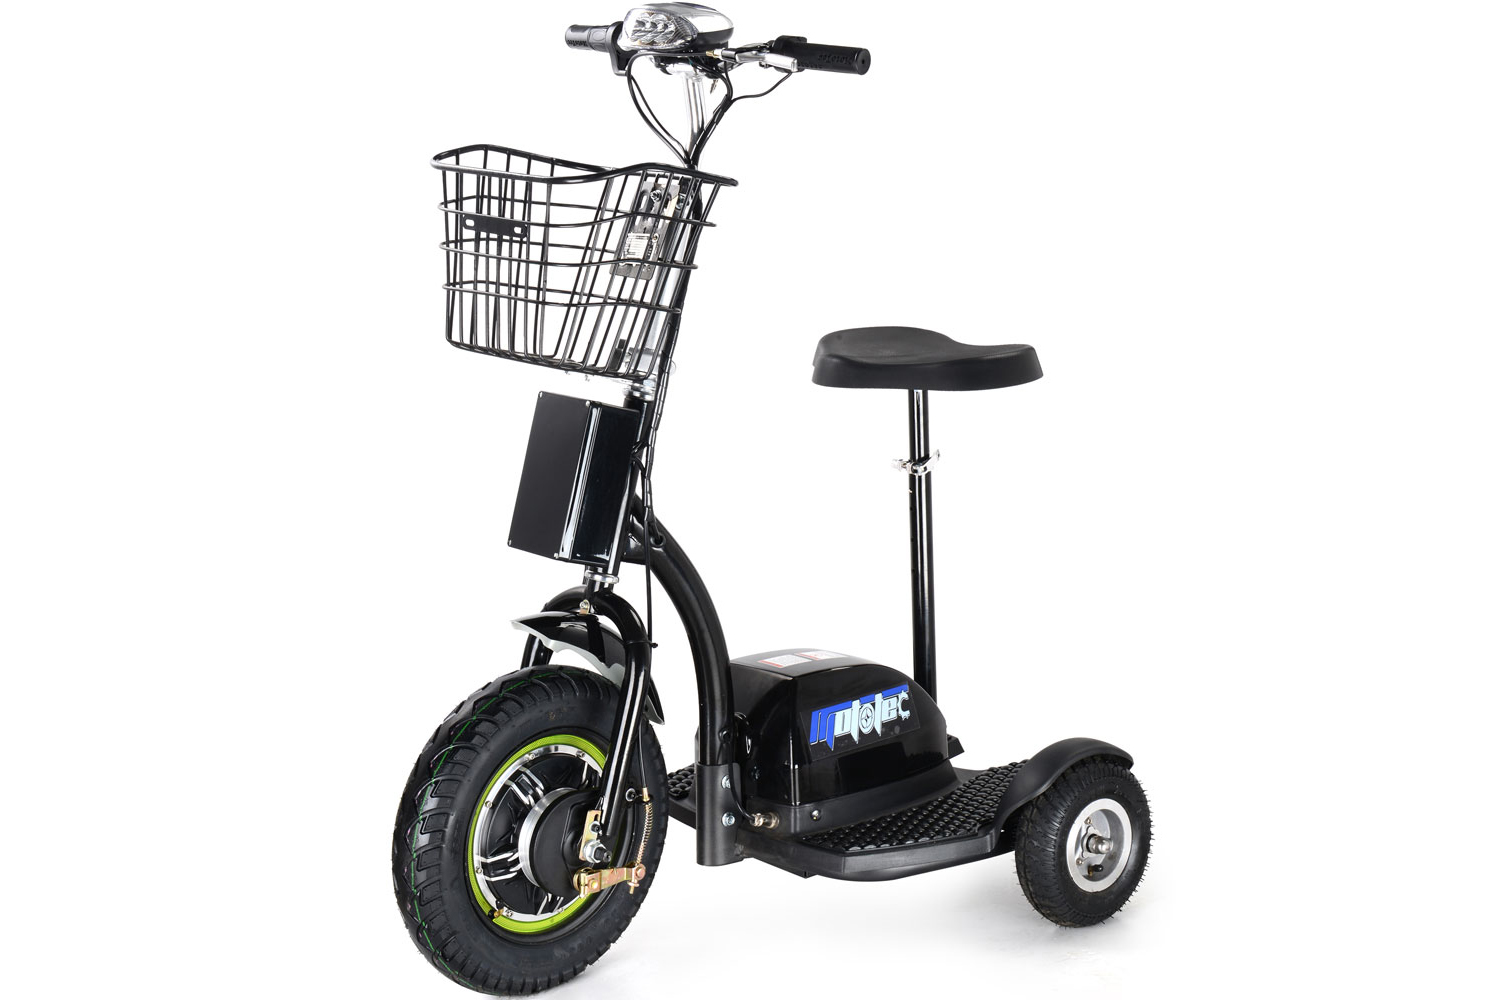 ev power 500 watt 3 wheeler electric mobility scooter. Black Bedroom Furniture Sets. Home Design Ideas